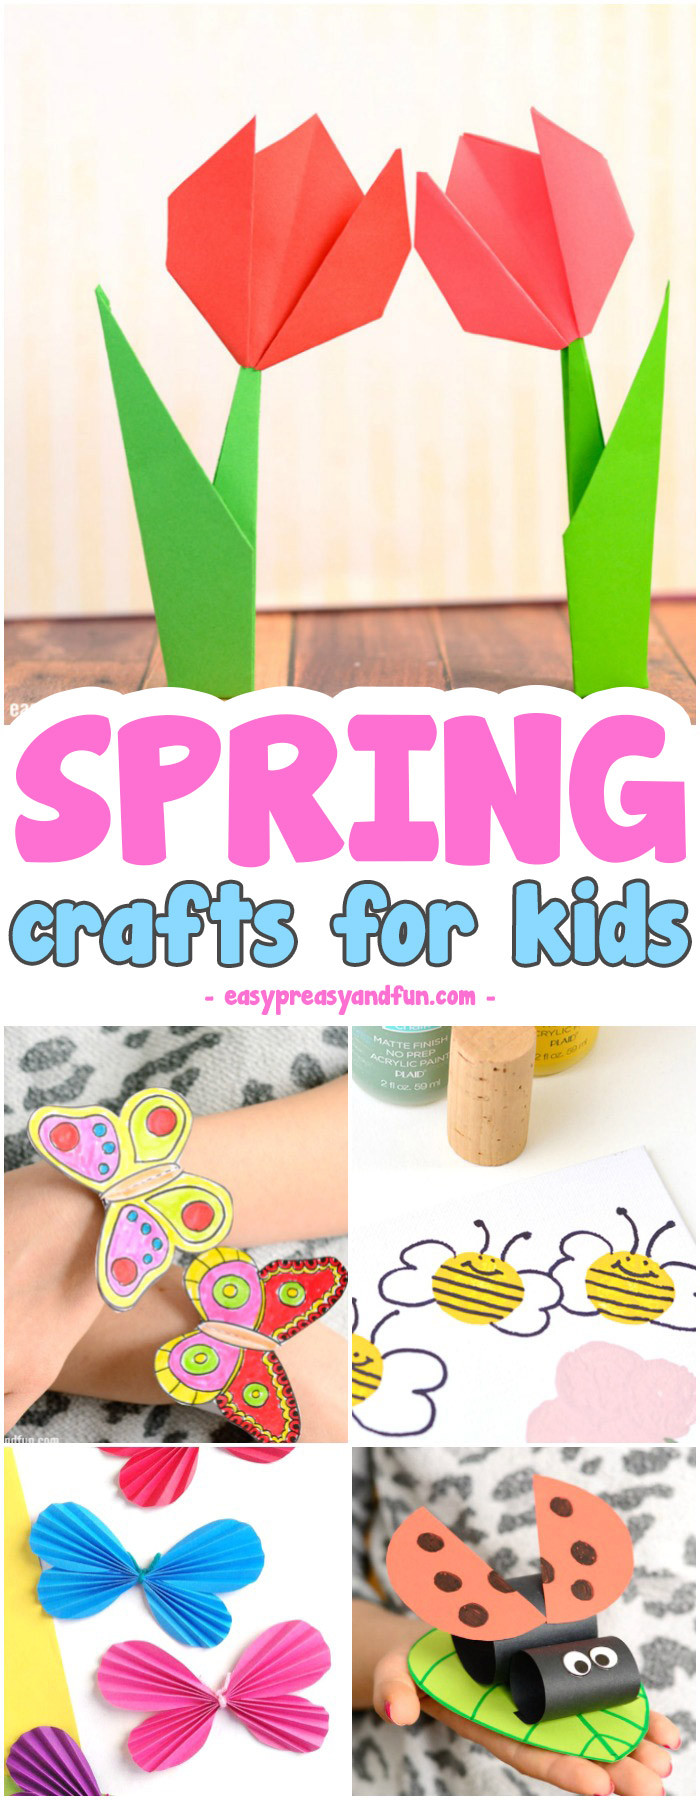 Best ideas about Arts And Crafts For Children . Save or Pin Spring Crafts for Kids Art and Craft Project Ideas for Now.